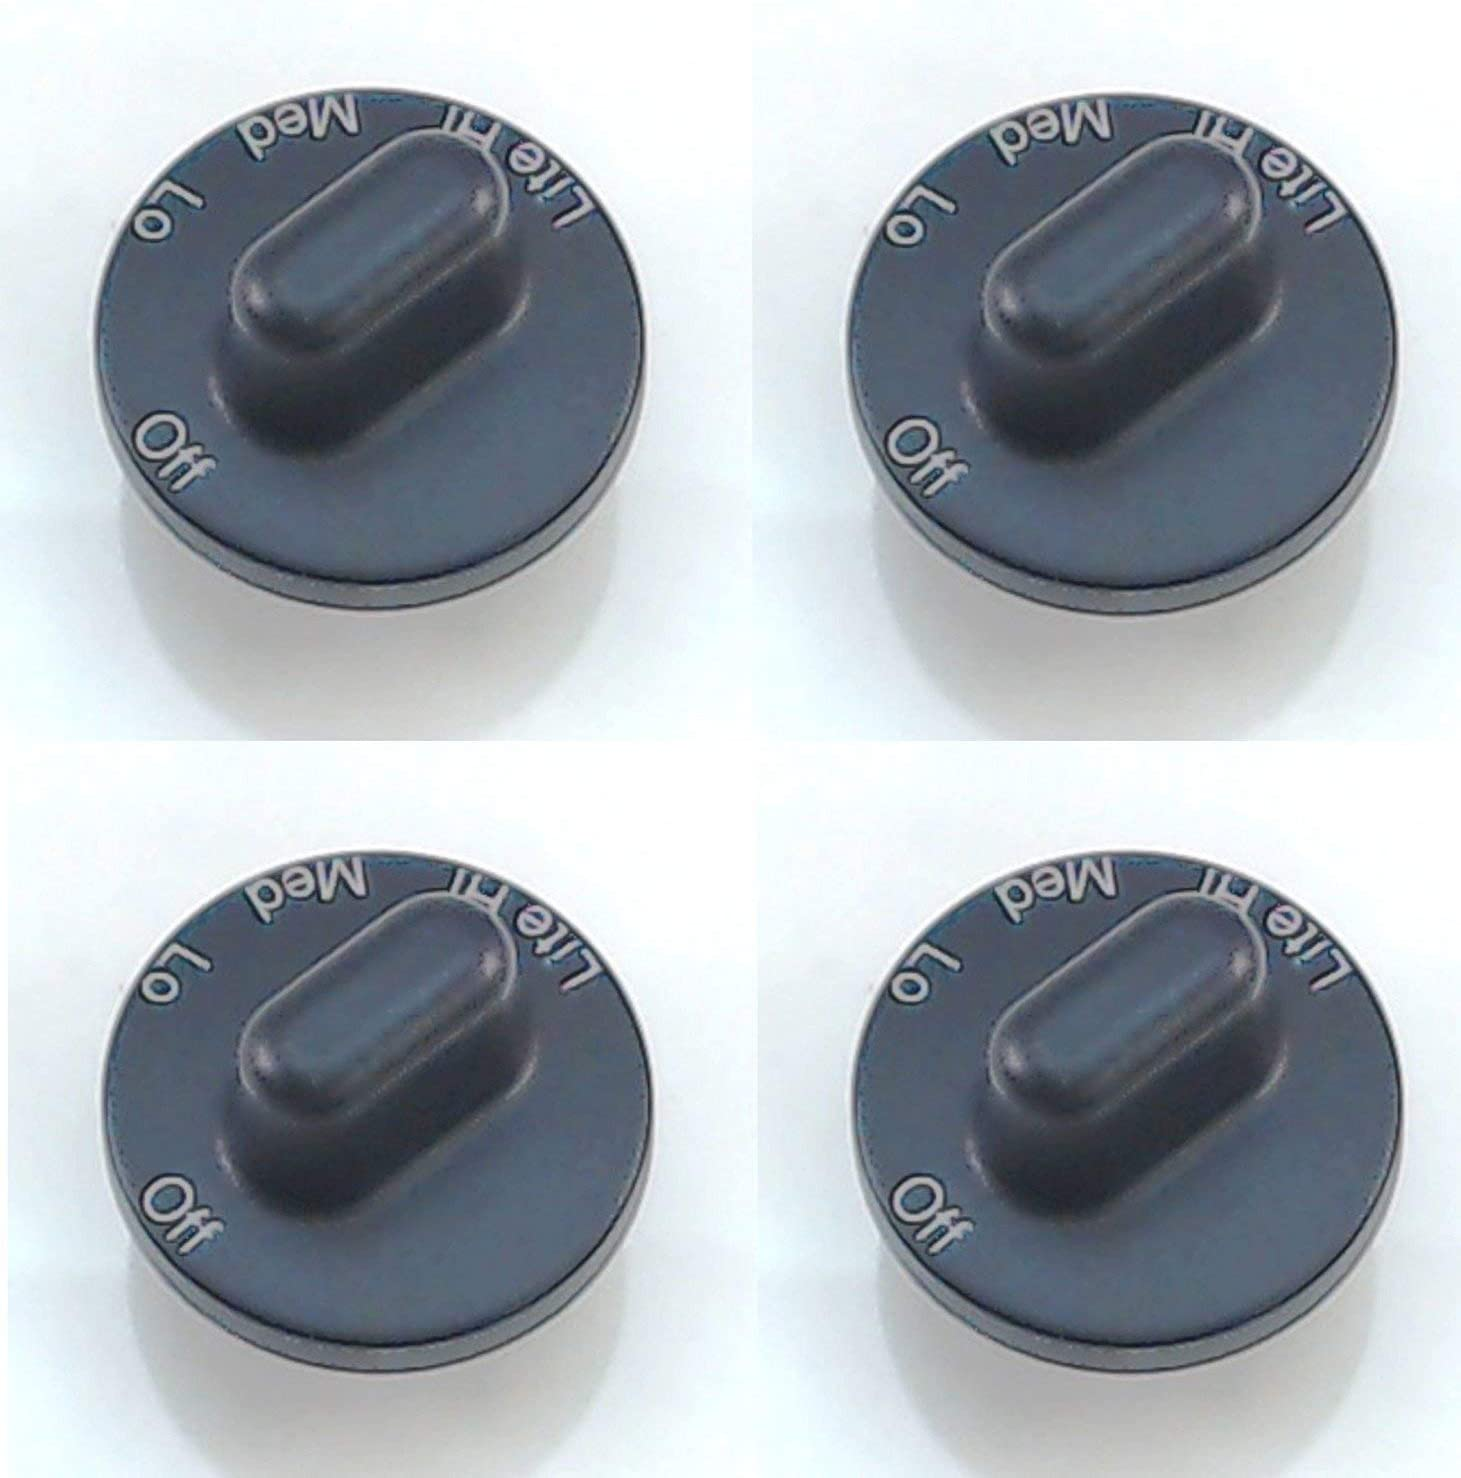 Edgewater Parts Surface Burner Knob 4 Pack Compatible with Maytag, Jenn Air, 71001641